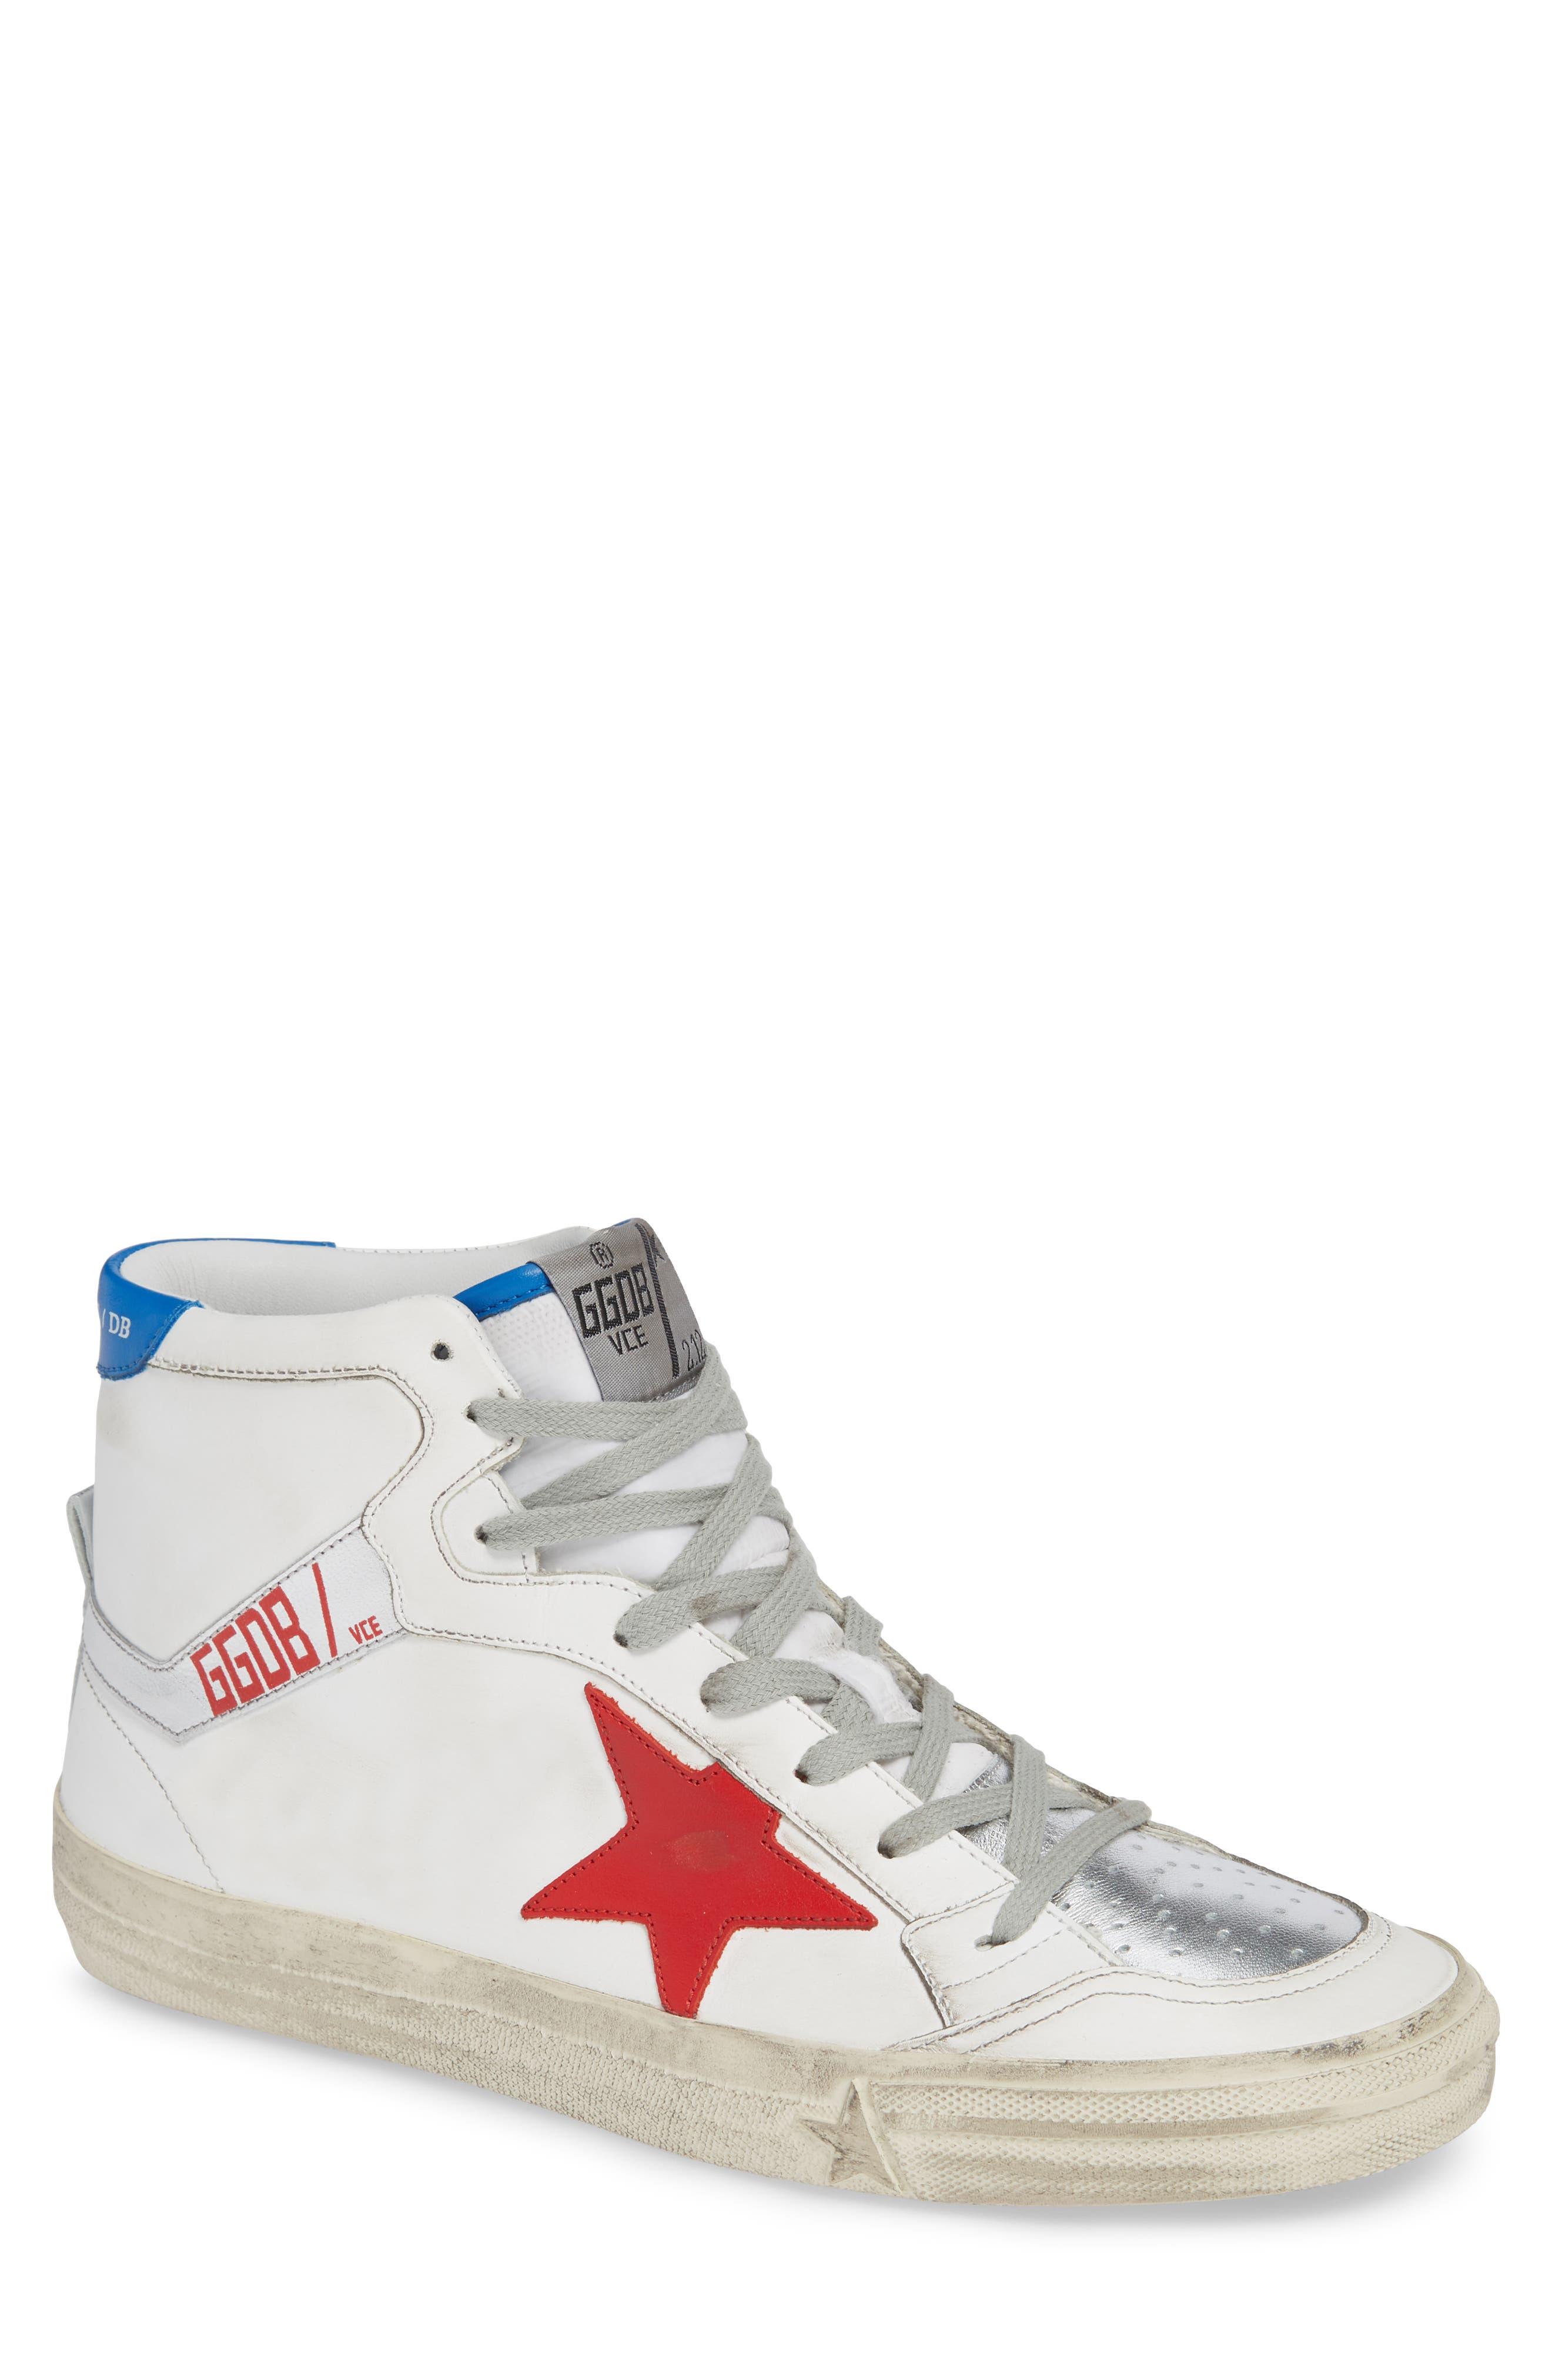 2.12 Star High Top Sneaker,                             Main thumbnail 1, color,                             WHITE LEATHER- RED STAR